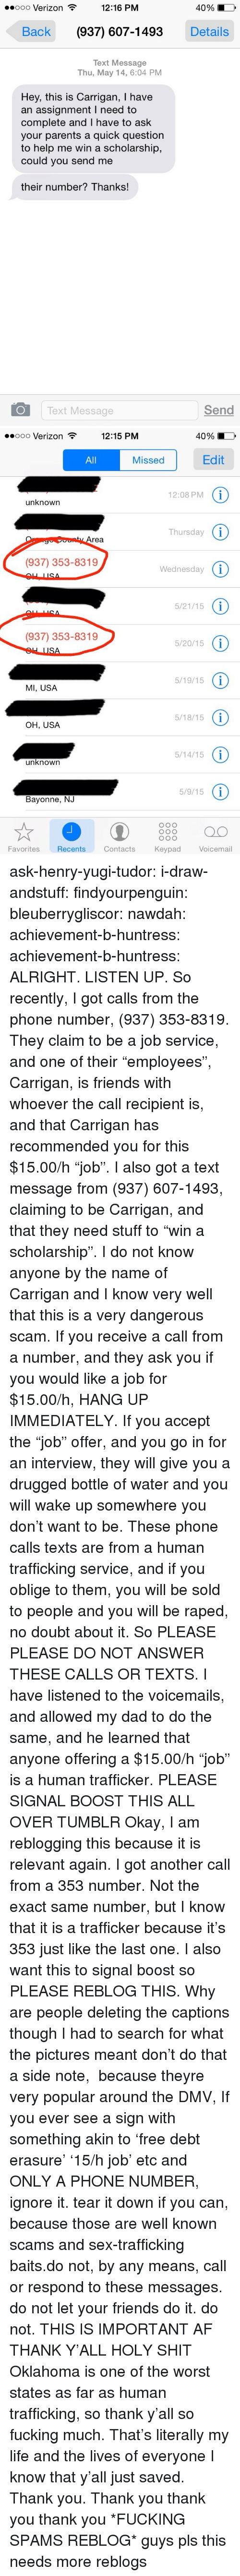 "drugged: ooo Verizon  12:16 PM  40%  Back (937) 607-1493Details  Text Message  Thu, May 14, 6:04 PM  Hey, this is Carrigan, I have  an assignment I need to  complete and I have to ask  your parents a quick questiorn  to help me win a scholarship,  could you send me  their number? Thanks!  Text Message  Send   ..ooo Verizon  12:15 PM  40%  All  Missed  Edit  12:08 PM 1  unknown  Thursday 1  rea  (937) 353-8319  Wednesday (i  5/21/15 1  (937) 353-8319  5/20/15 (i  5/19/15 1  MI, USA  5/18/15 1  OH, USA  5/14/15 1  unknown  5/9/151  Bayonne, NJ  008 O  Favorites  Recents  Contacts  Keypad  Voicemail ask-henry-yugi-tudor: i-draw-andstuff:  findyourpenguin:   bleuberrygliscor:  nawdah:  achievement-b-huntress:  achievement-b-huntress:  ALRIGHT. LISTEN UP.   So recently, I got calls from the phone number, (937) 353-8319. They claim to be a job service, and one of their ""employees"", Carrigan, is friends with whoever the call recipient is, and that Carrigan has recommended you for this $15.00/h ""job"". I also got a text message from (937) 607-1493, claiming to be Carrigan, and that they need stuff to ""win a scholarship"". I do not know anyone by the name of Carrigan and I know very well that this is a very dangerous scam.  If you receive a call from a number, and they ask you if you would like a job for $15.00/h, HANG UP IMMEDIATELY. If you accept the ""job"" offer, and you go in for an interview, they will give you a drugged bottle of water and you will wake up somewhere you don't want to be.  These phone calls  texts are from a human trafficking service, and if you oblige to them, you will be sold to people and you will be raped, no doubt about it. So PLEASE PLEASE DO NOT ANSWER THESE CALLS OR TEXTS. I have listened to the voicemails, and allowed my dad to do the same, and he learned that anyone offering a $15.00/h ""job"" is a human trafficker.  PLEASE SIGNAL BOOST THIS ALL OVER TUMBLR  Okay, I am reblogging this because it is relevant again. I got another call from a 353 number. Not the exact same number, but I know that it is a trafficker because it's 353 just like the last one. I also want this to signal boost so PLEASE REBLOG THIS.  Why are people deleting the captions though I had to search for what the pictures meant don't do that  a side note,  because theyre very popular around the DMV, If you ever see a sign with something akin to 'free debt erasure' '15/h job' etc and ONLY A PHONE NUMBER, ignore it. tear it down if you can, because those are well known scams and sex-trafficking baits.do not, by any means, call or respond to these messages. do not let your friends do it. do not.  THIS IS IMPORTANT AF THANK Y'ALL HOLY SHIT Oklahoma is one of the worst states as far as human trafficking, so thank y'all so fucking much. That's literally my life and the lives of everyone I know that y'all just saved. Thank you. Thank you thank you thank you   *FUCKING SPAMS REBLOG*  guys pls this needs more reblogs"